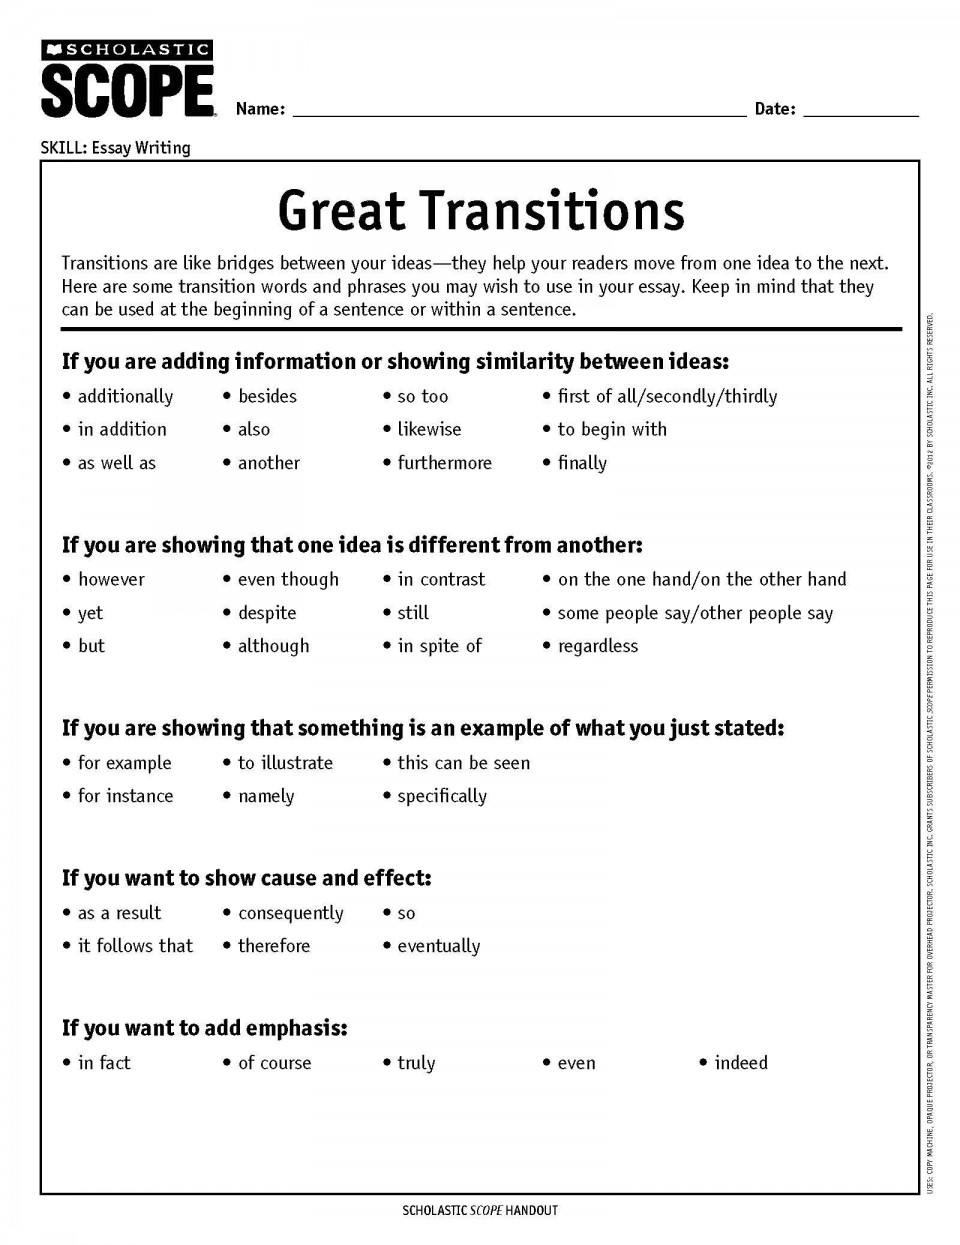 019 Essay Example Transitions How To Choose The Perfect Transition Word Or Phrase Writing Words For An List Of Transitional Essays Pdf Archaicawful In Spanish Concluding Sentence Between Paragraphs 960